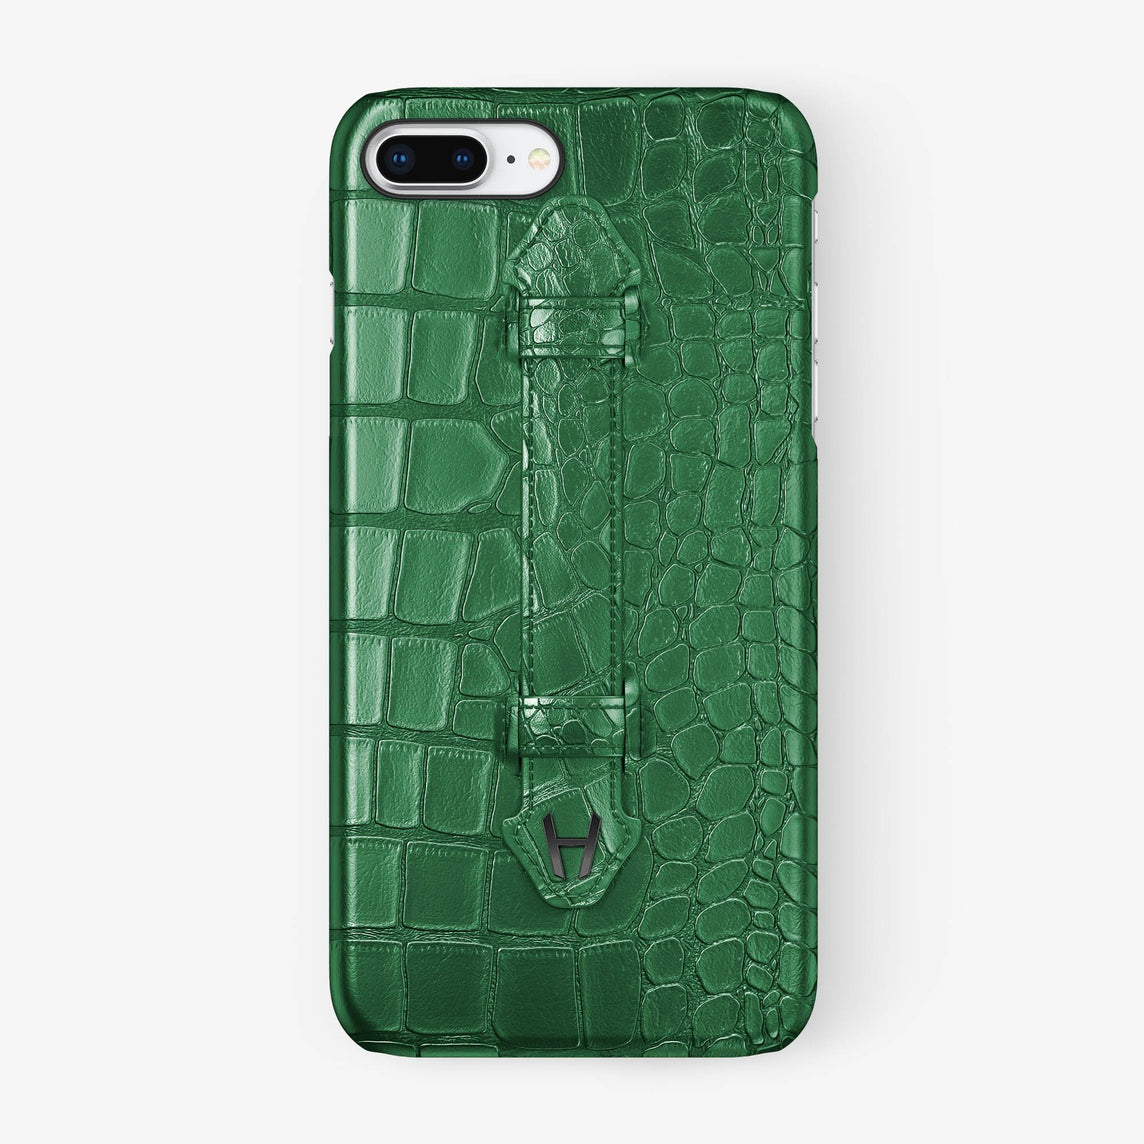 Green Alligator iPhone Finger Case for iPhone 7/8 Plus finishing black - Hadoro Luxury Cases